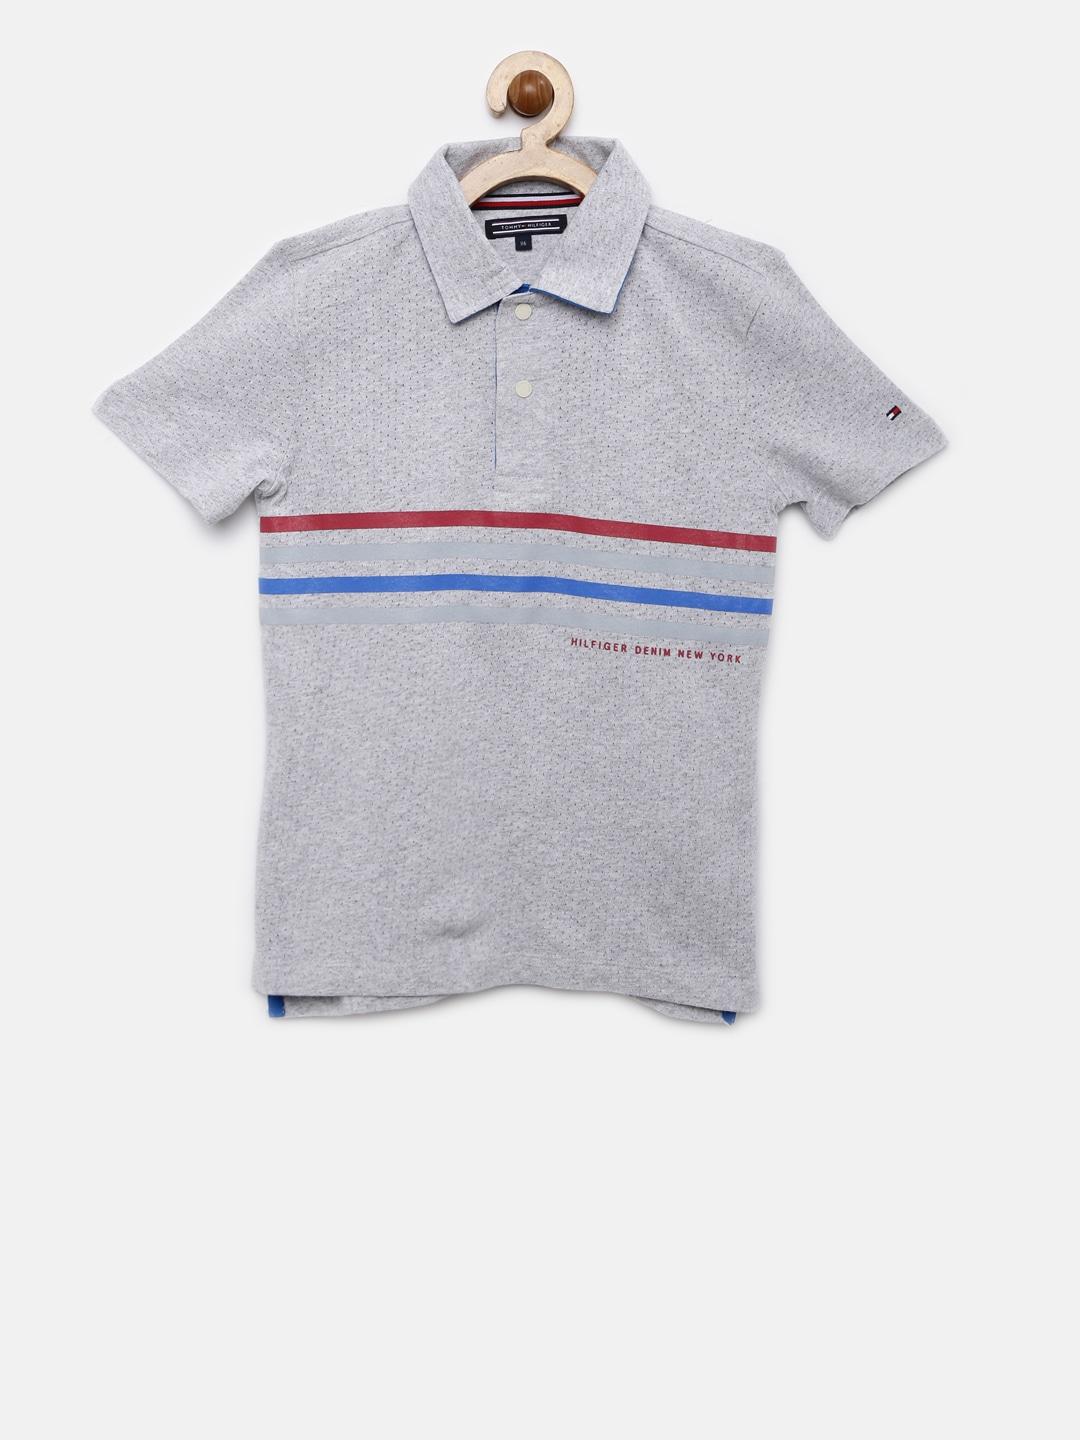 5aefe3f0860 Tops Tommy Hilfiger Infant Boys Polo Shirt Blue Striped Clothing &  Accessories